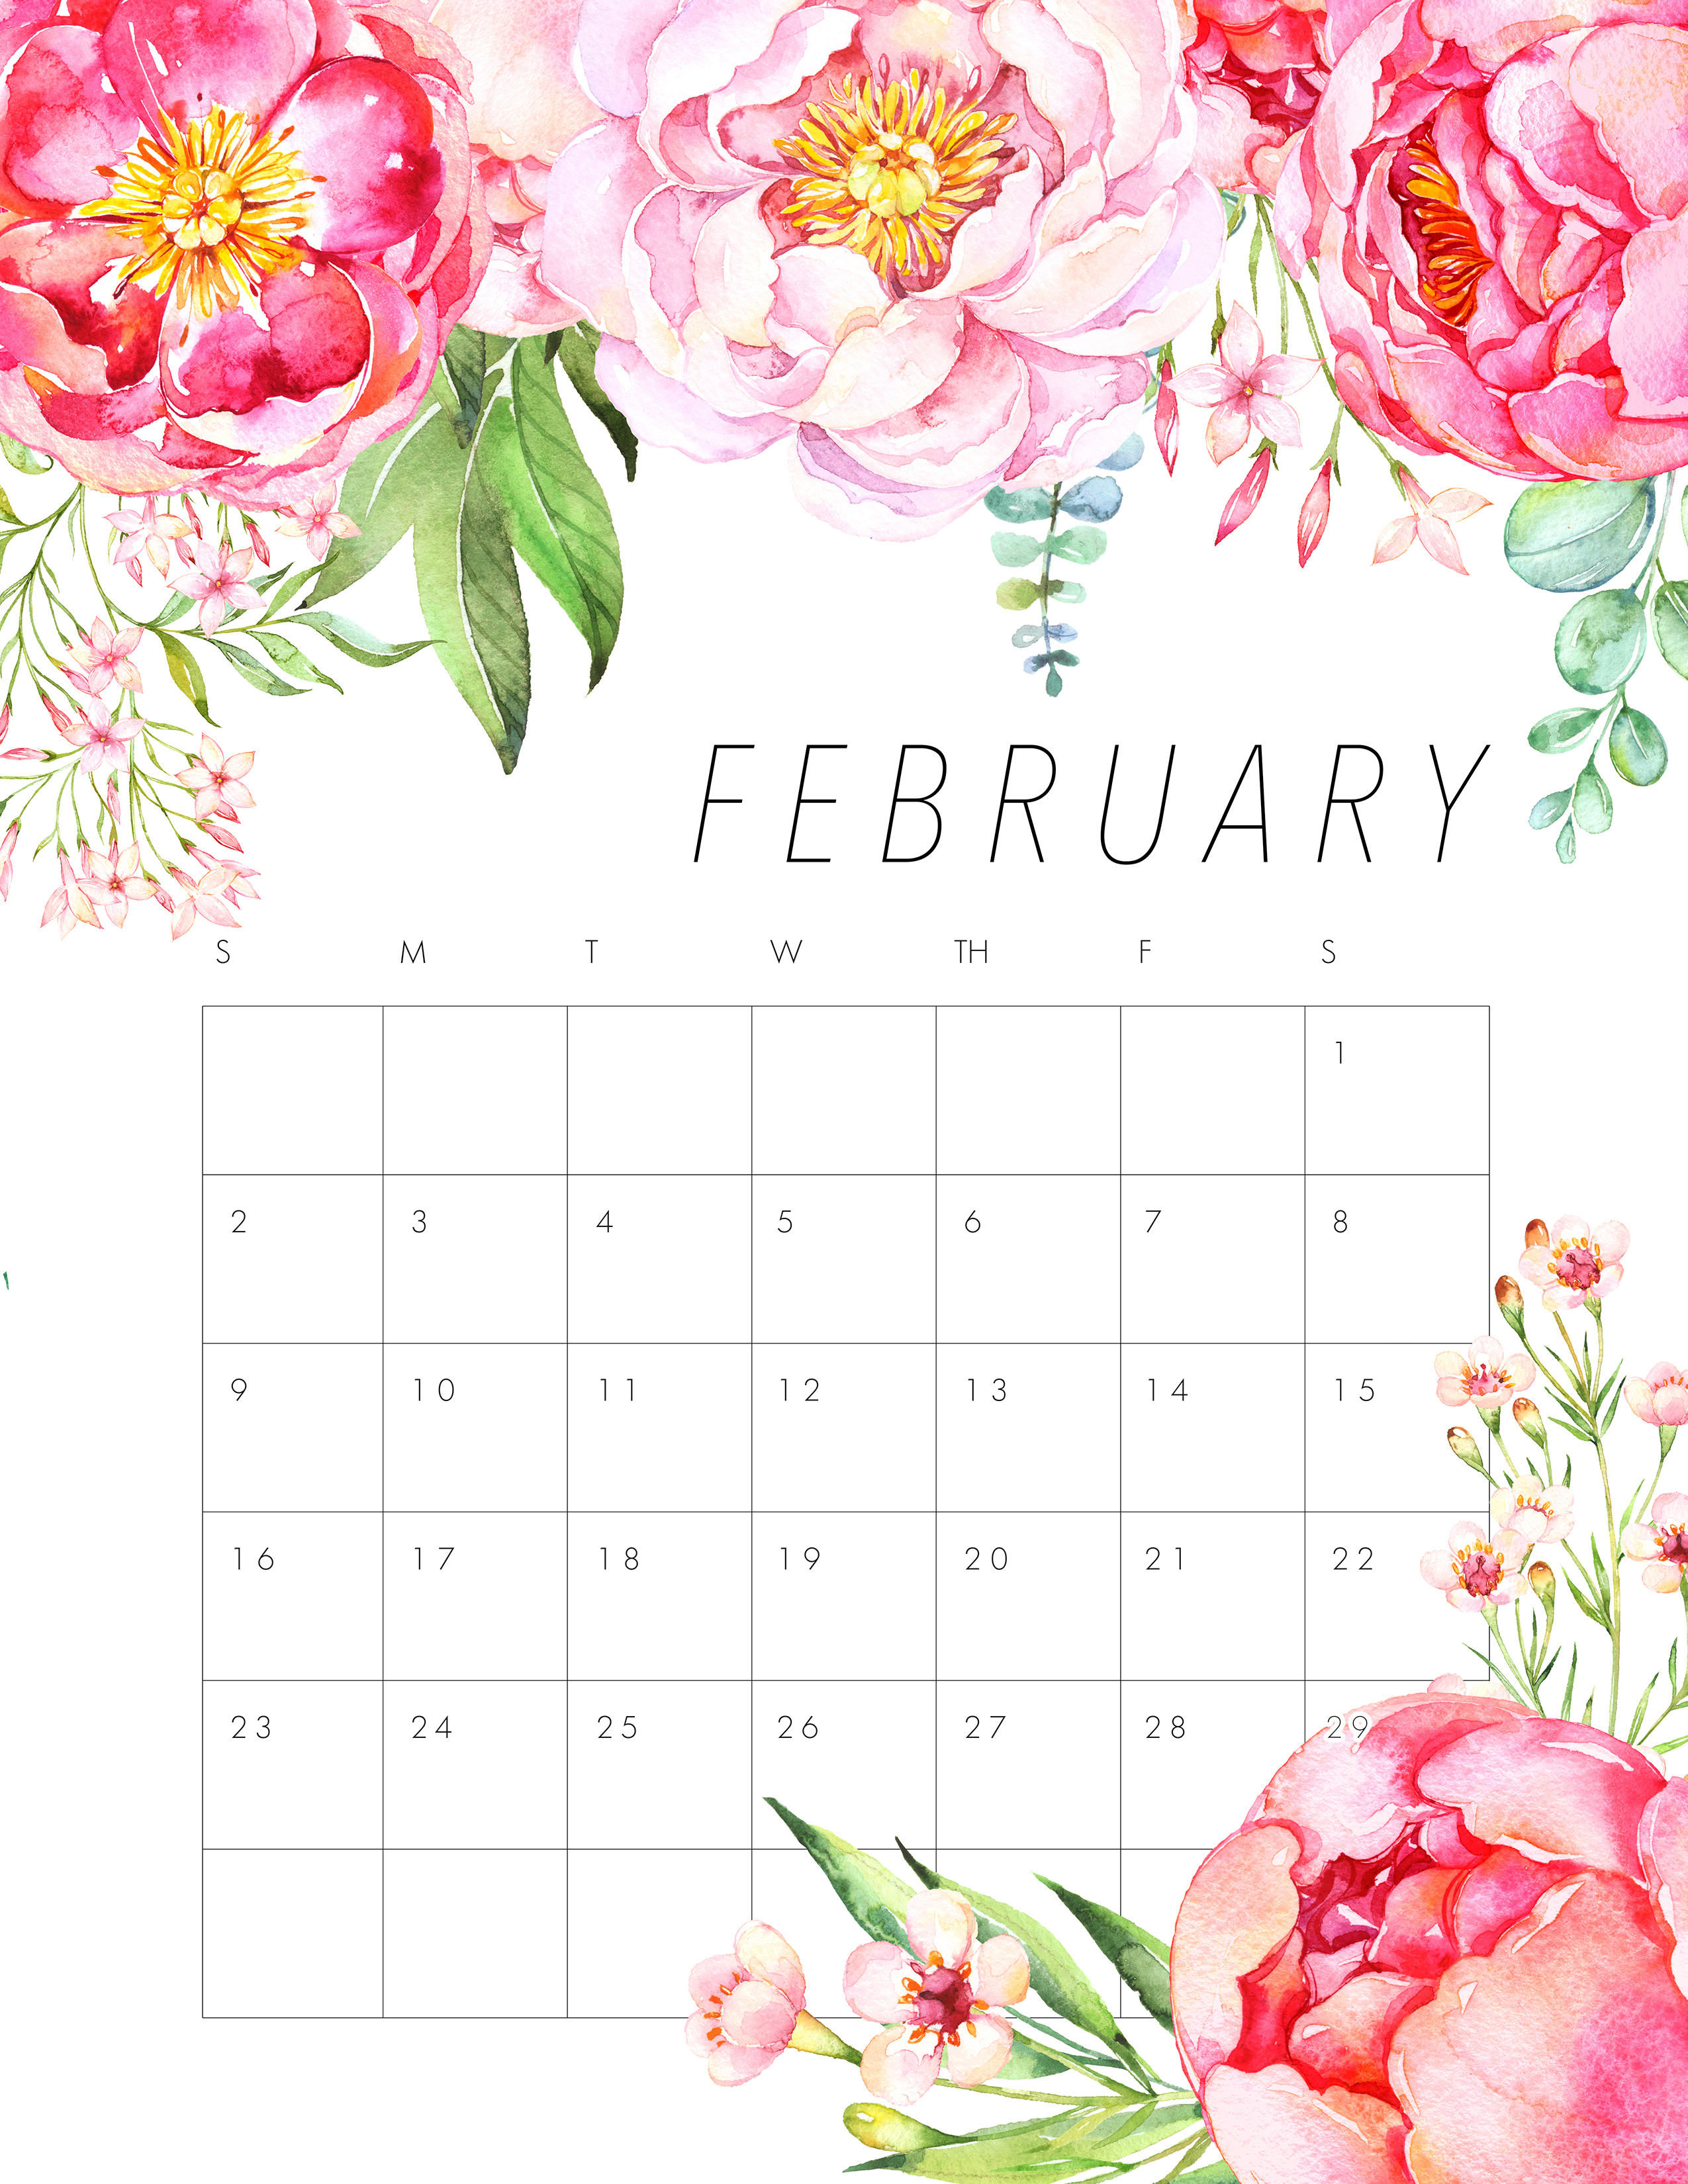 Free Printable 2020 Floral Calendar - The Cottage Market